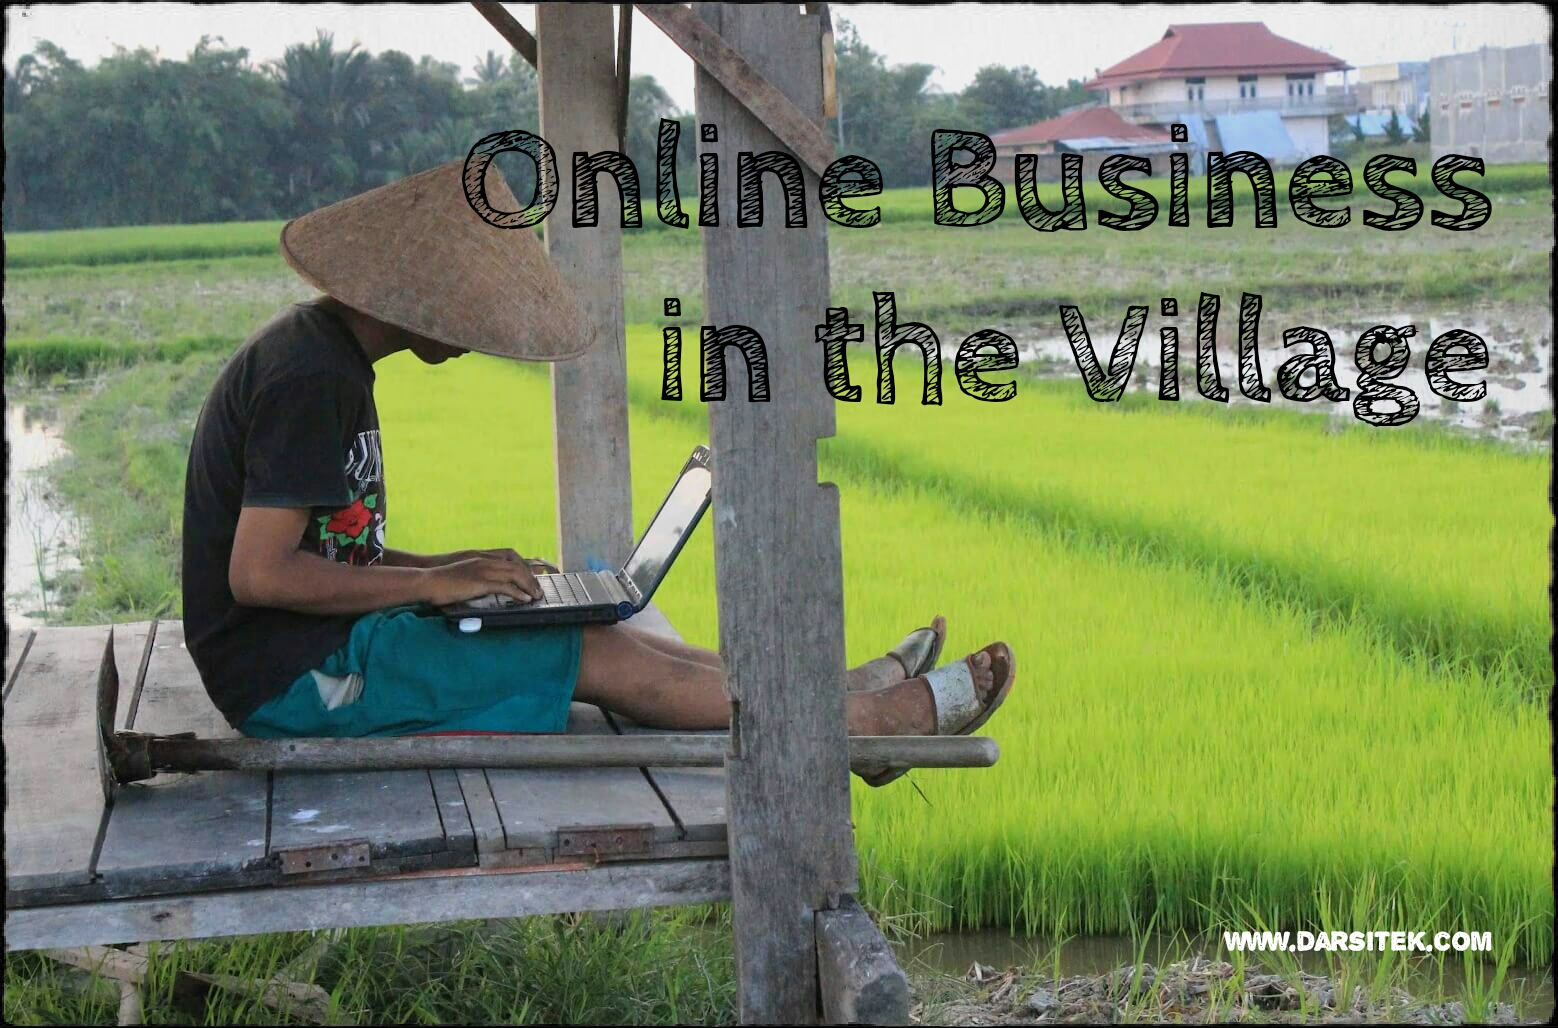 Online Business in the Village